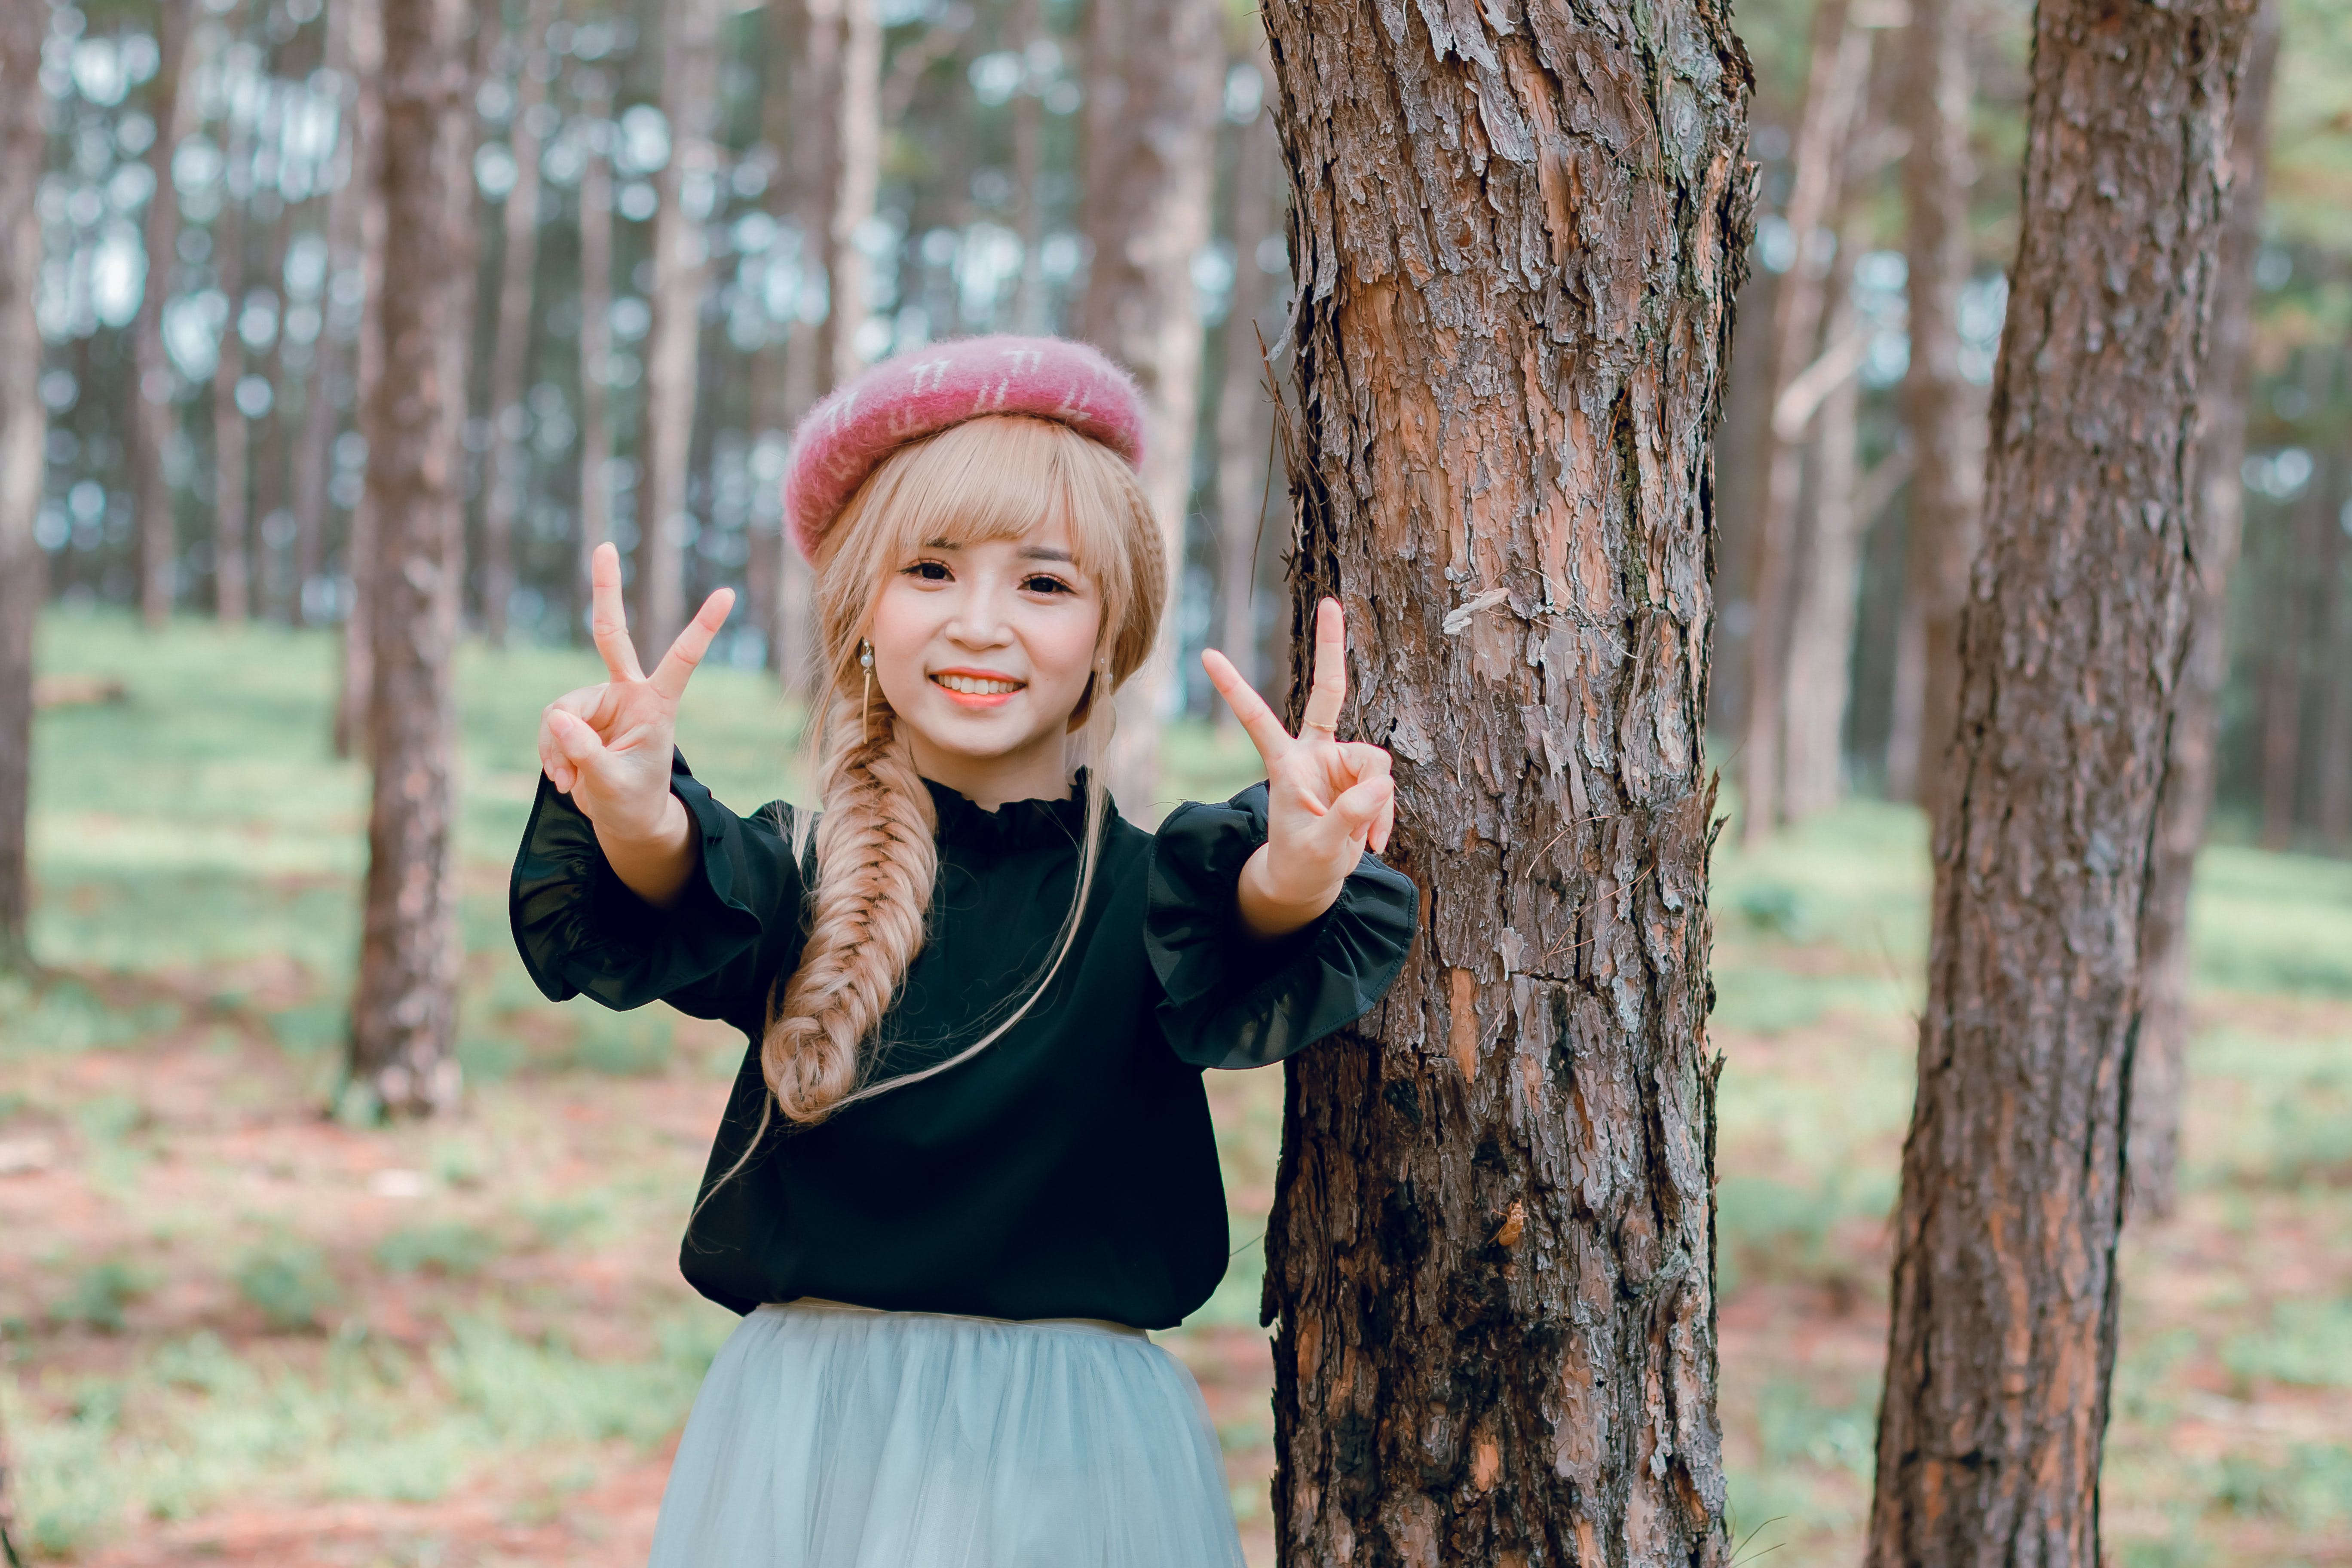 Girl Wearing Black Shirt Standing Near Tree